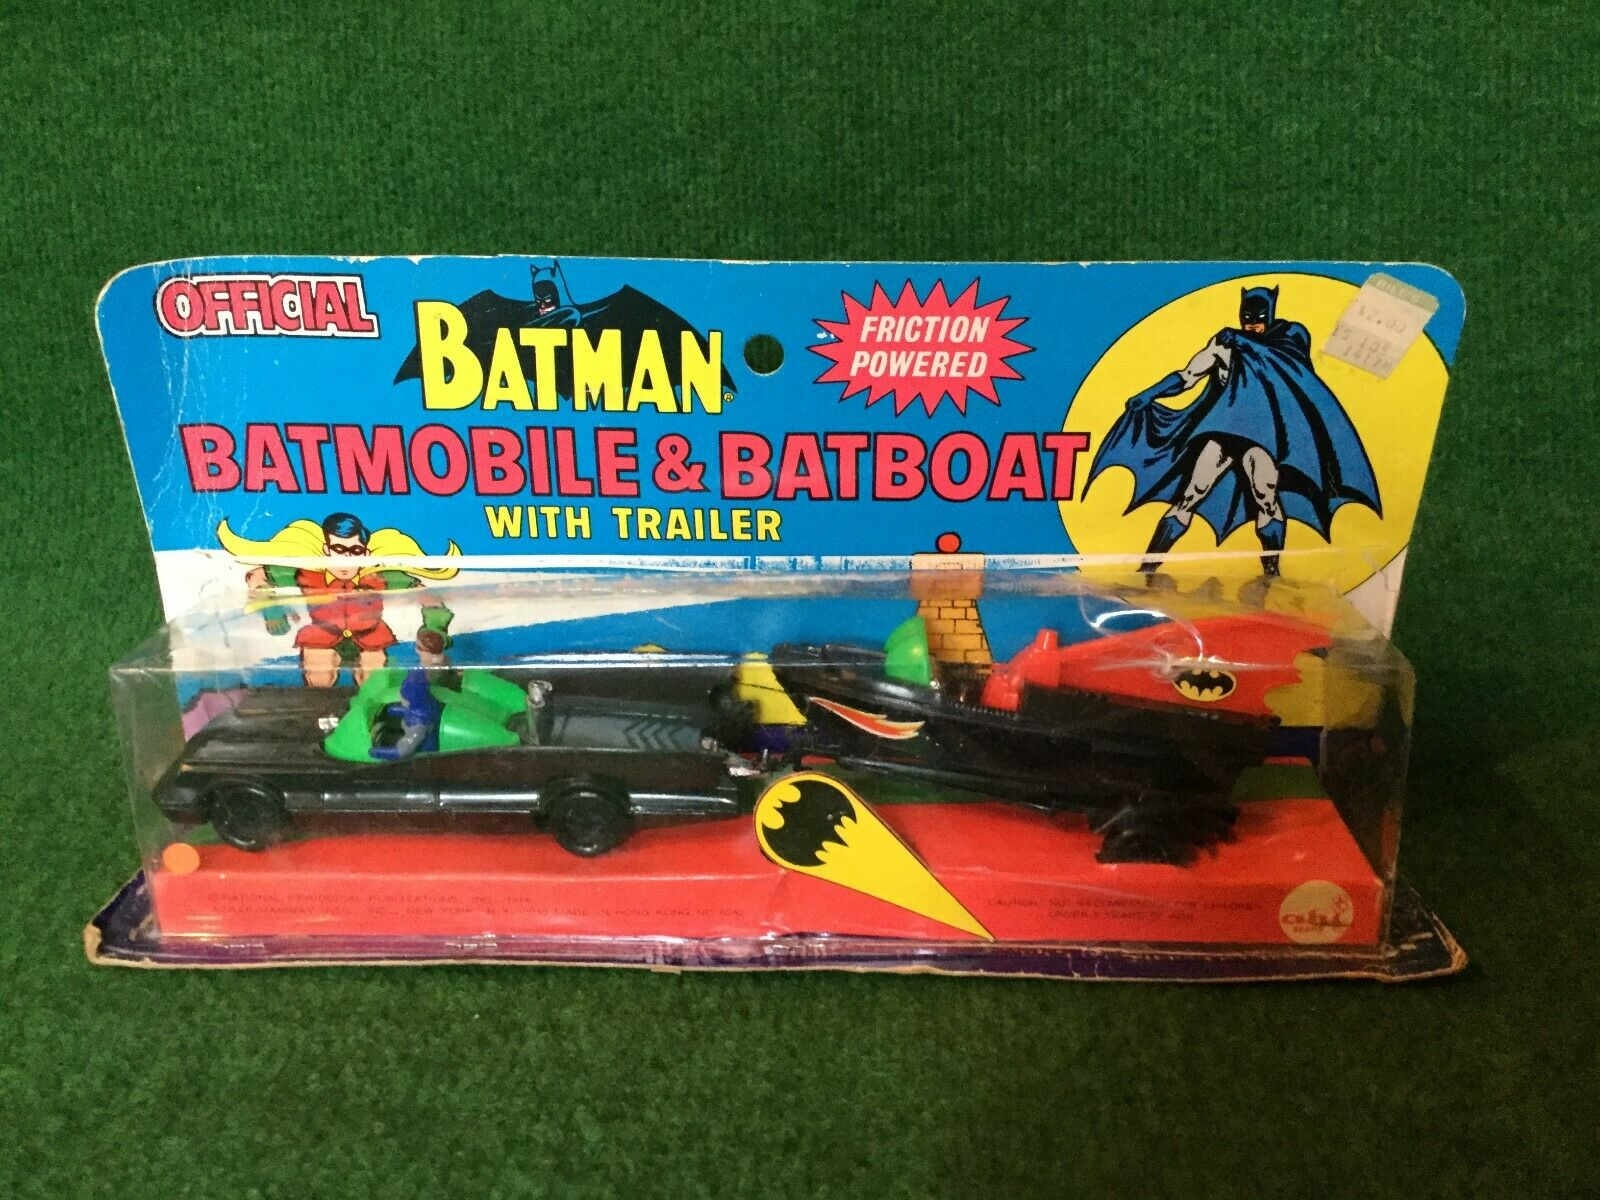 AHI Azrak Hamway Batman Batmobile & Batboat with Trailer Boxed Selten   Rare